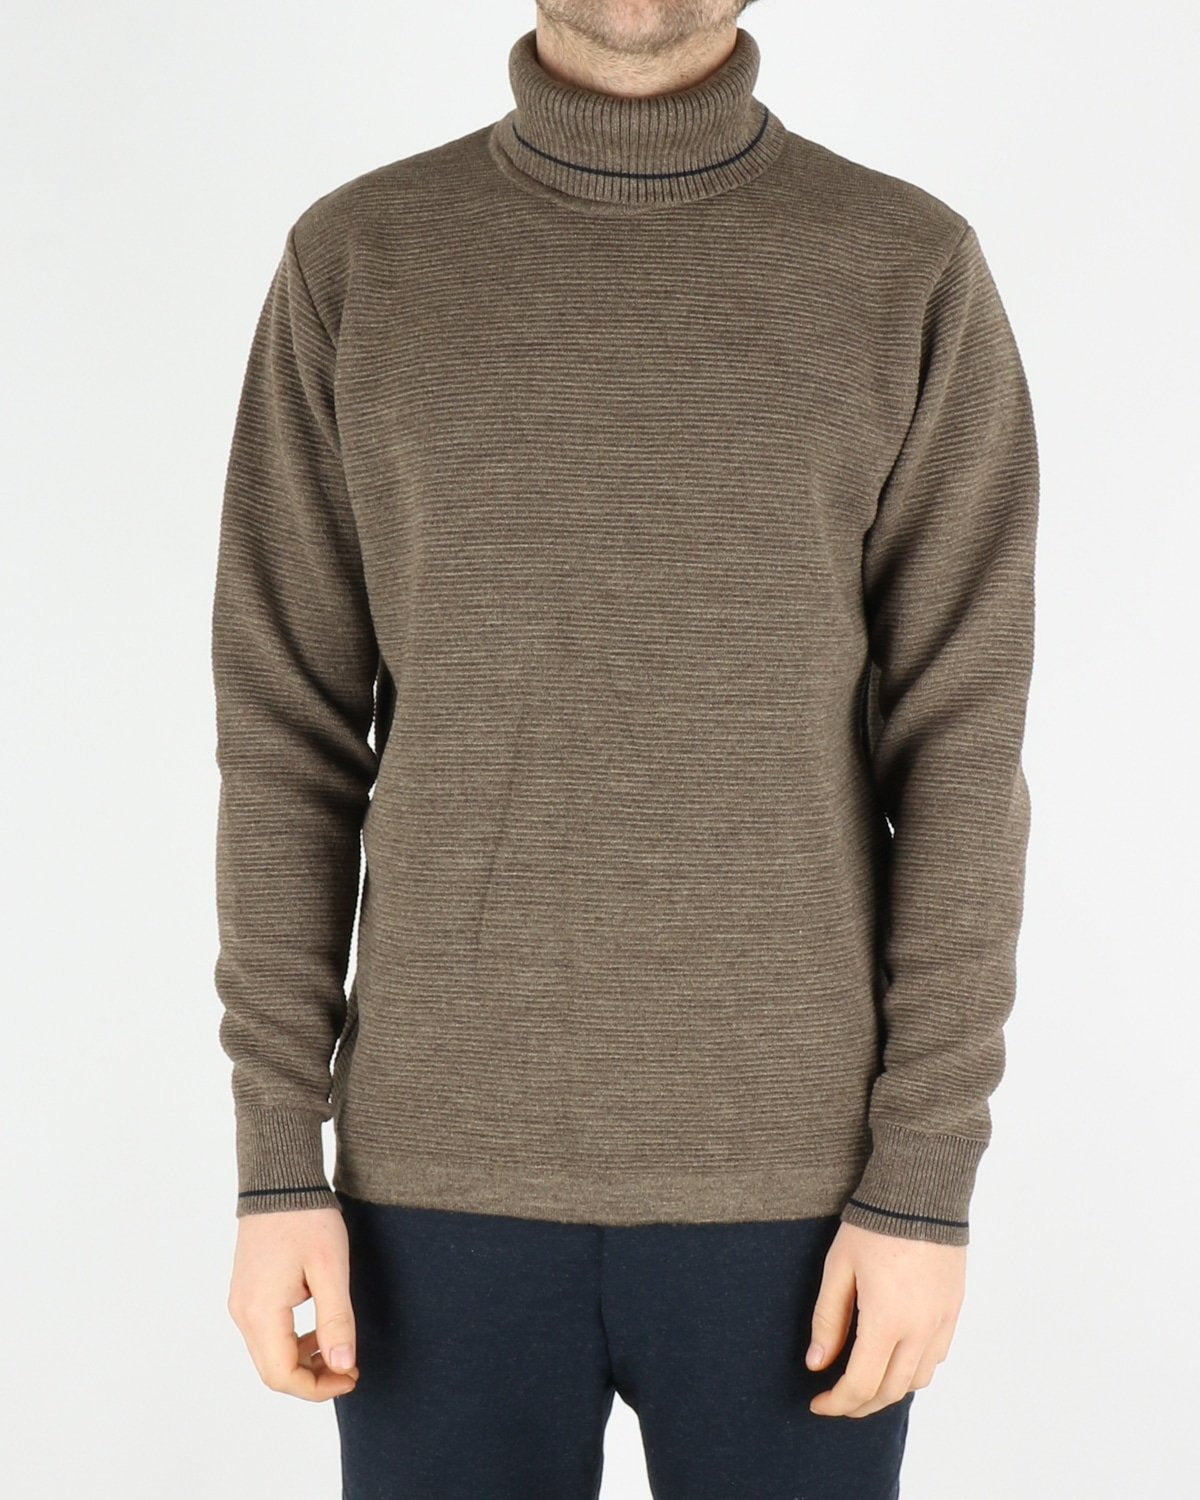 woodbird_craving otto turtle knit_forrest_1_4